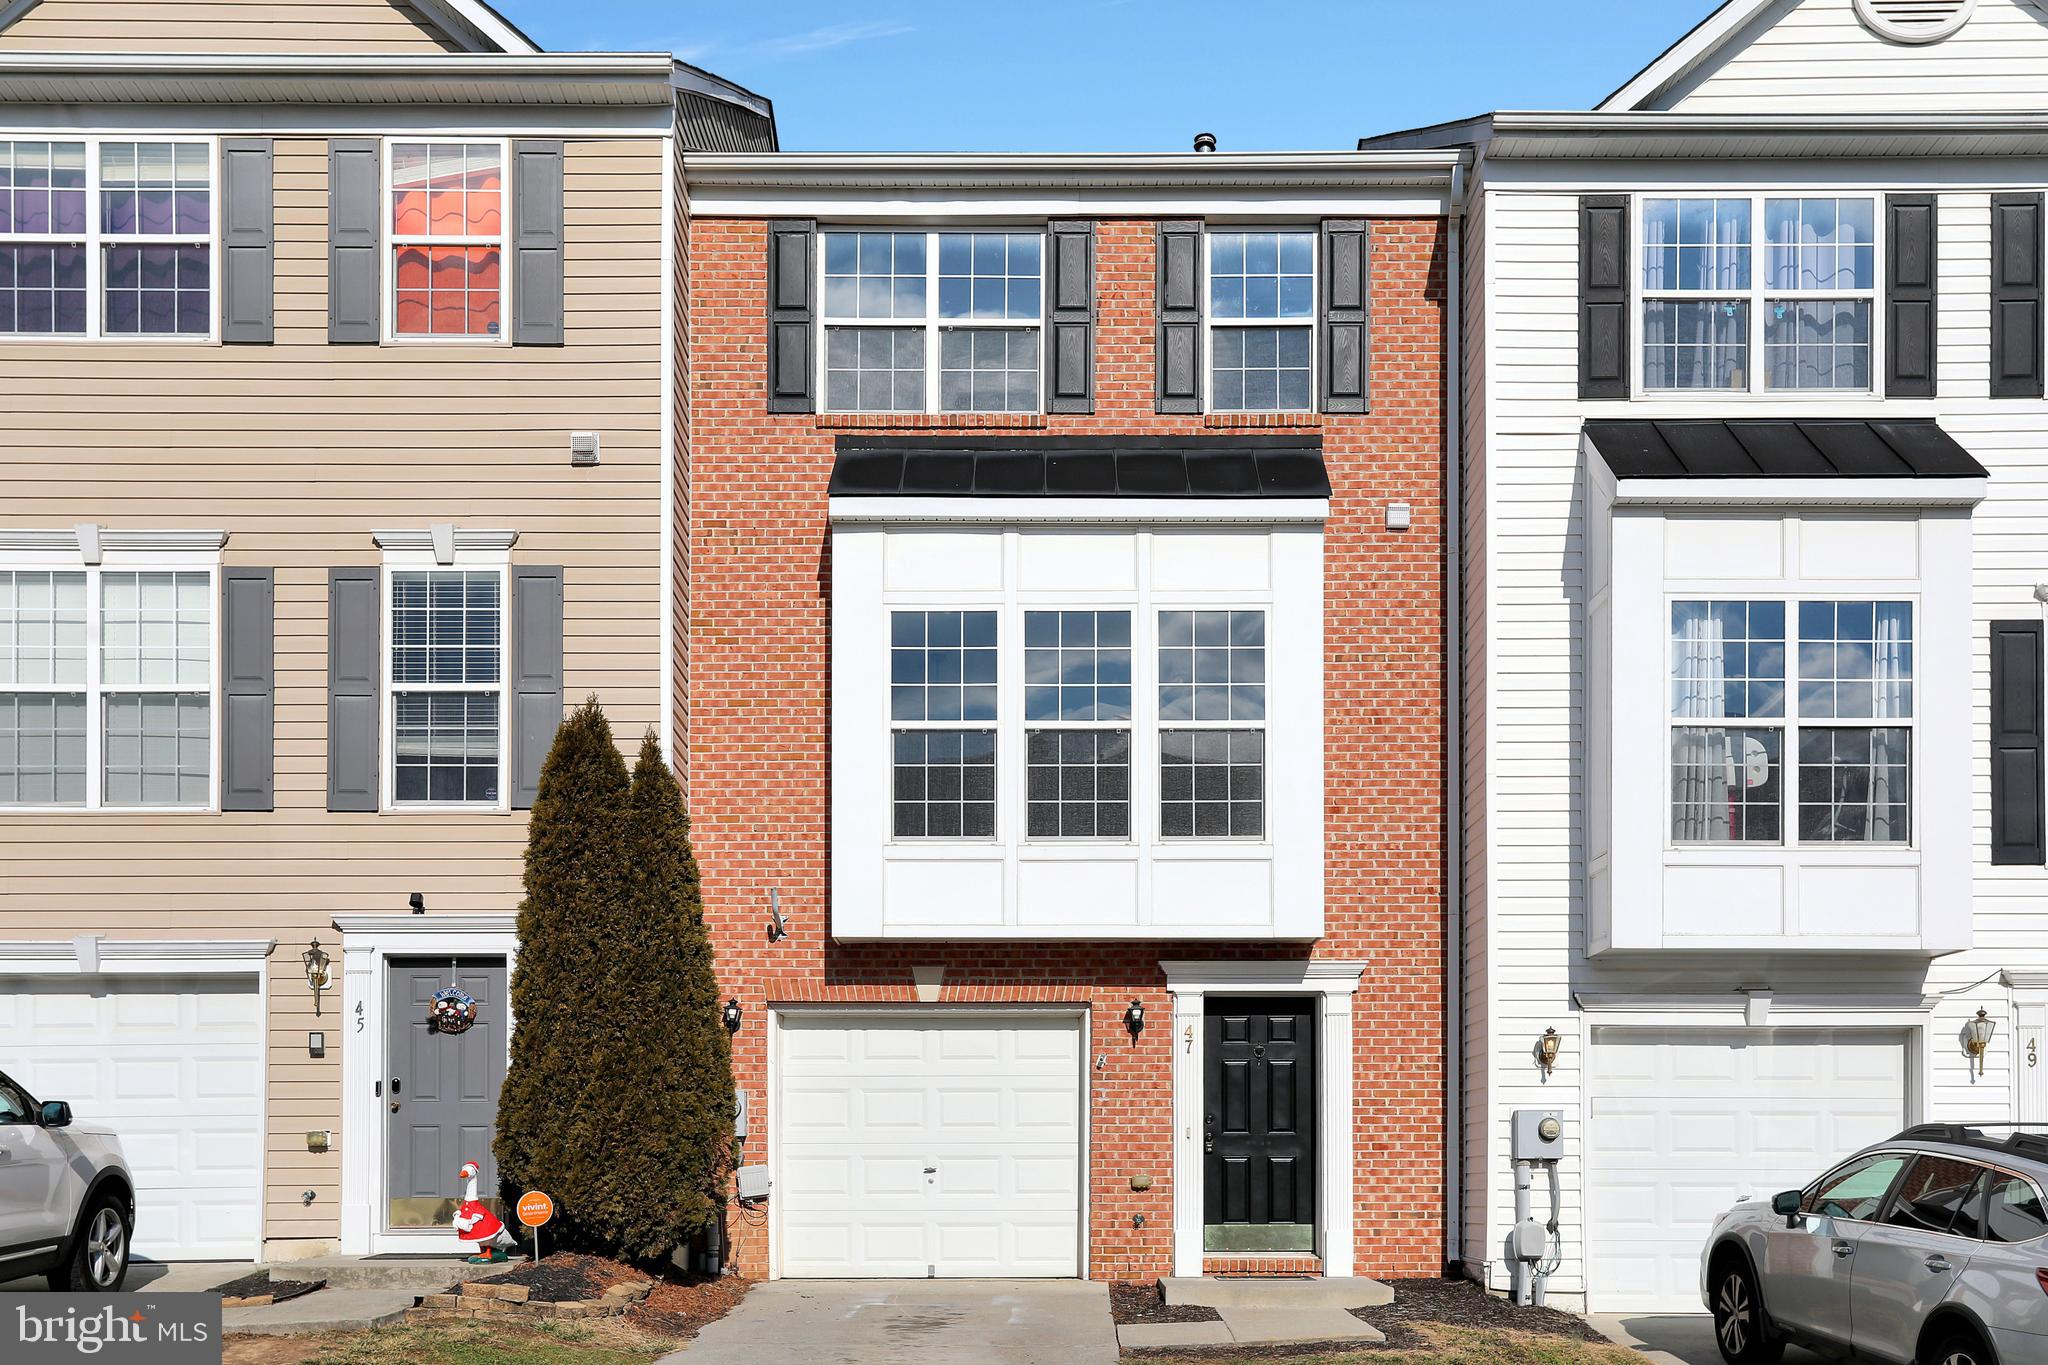 Move in ready! Three story townhouse with walkout basement offering fresh paint, new carpeting, and